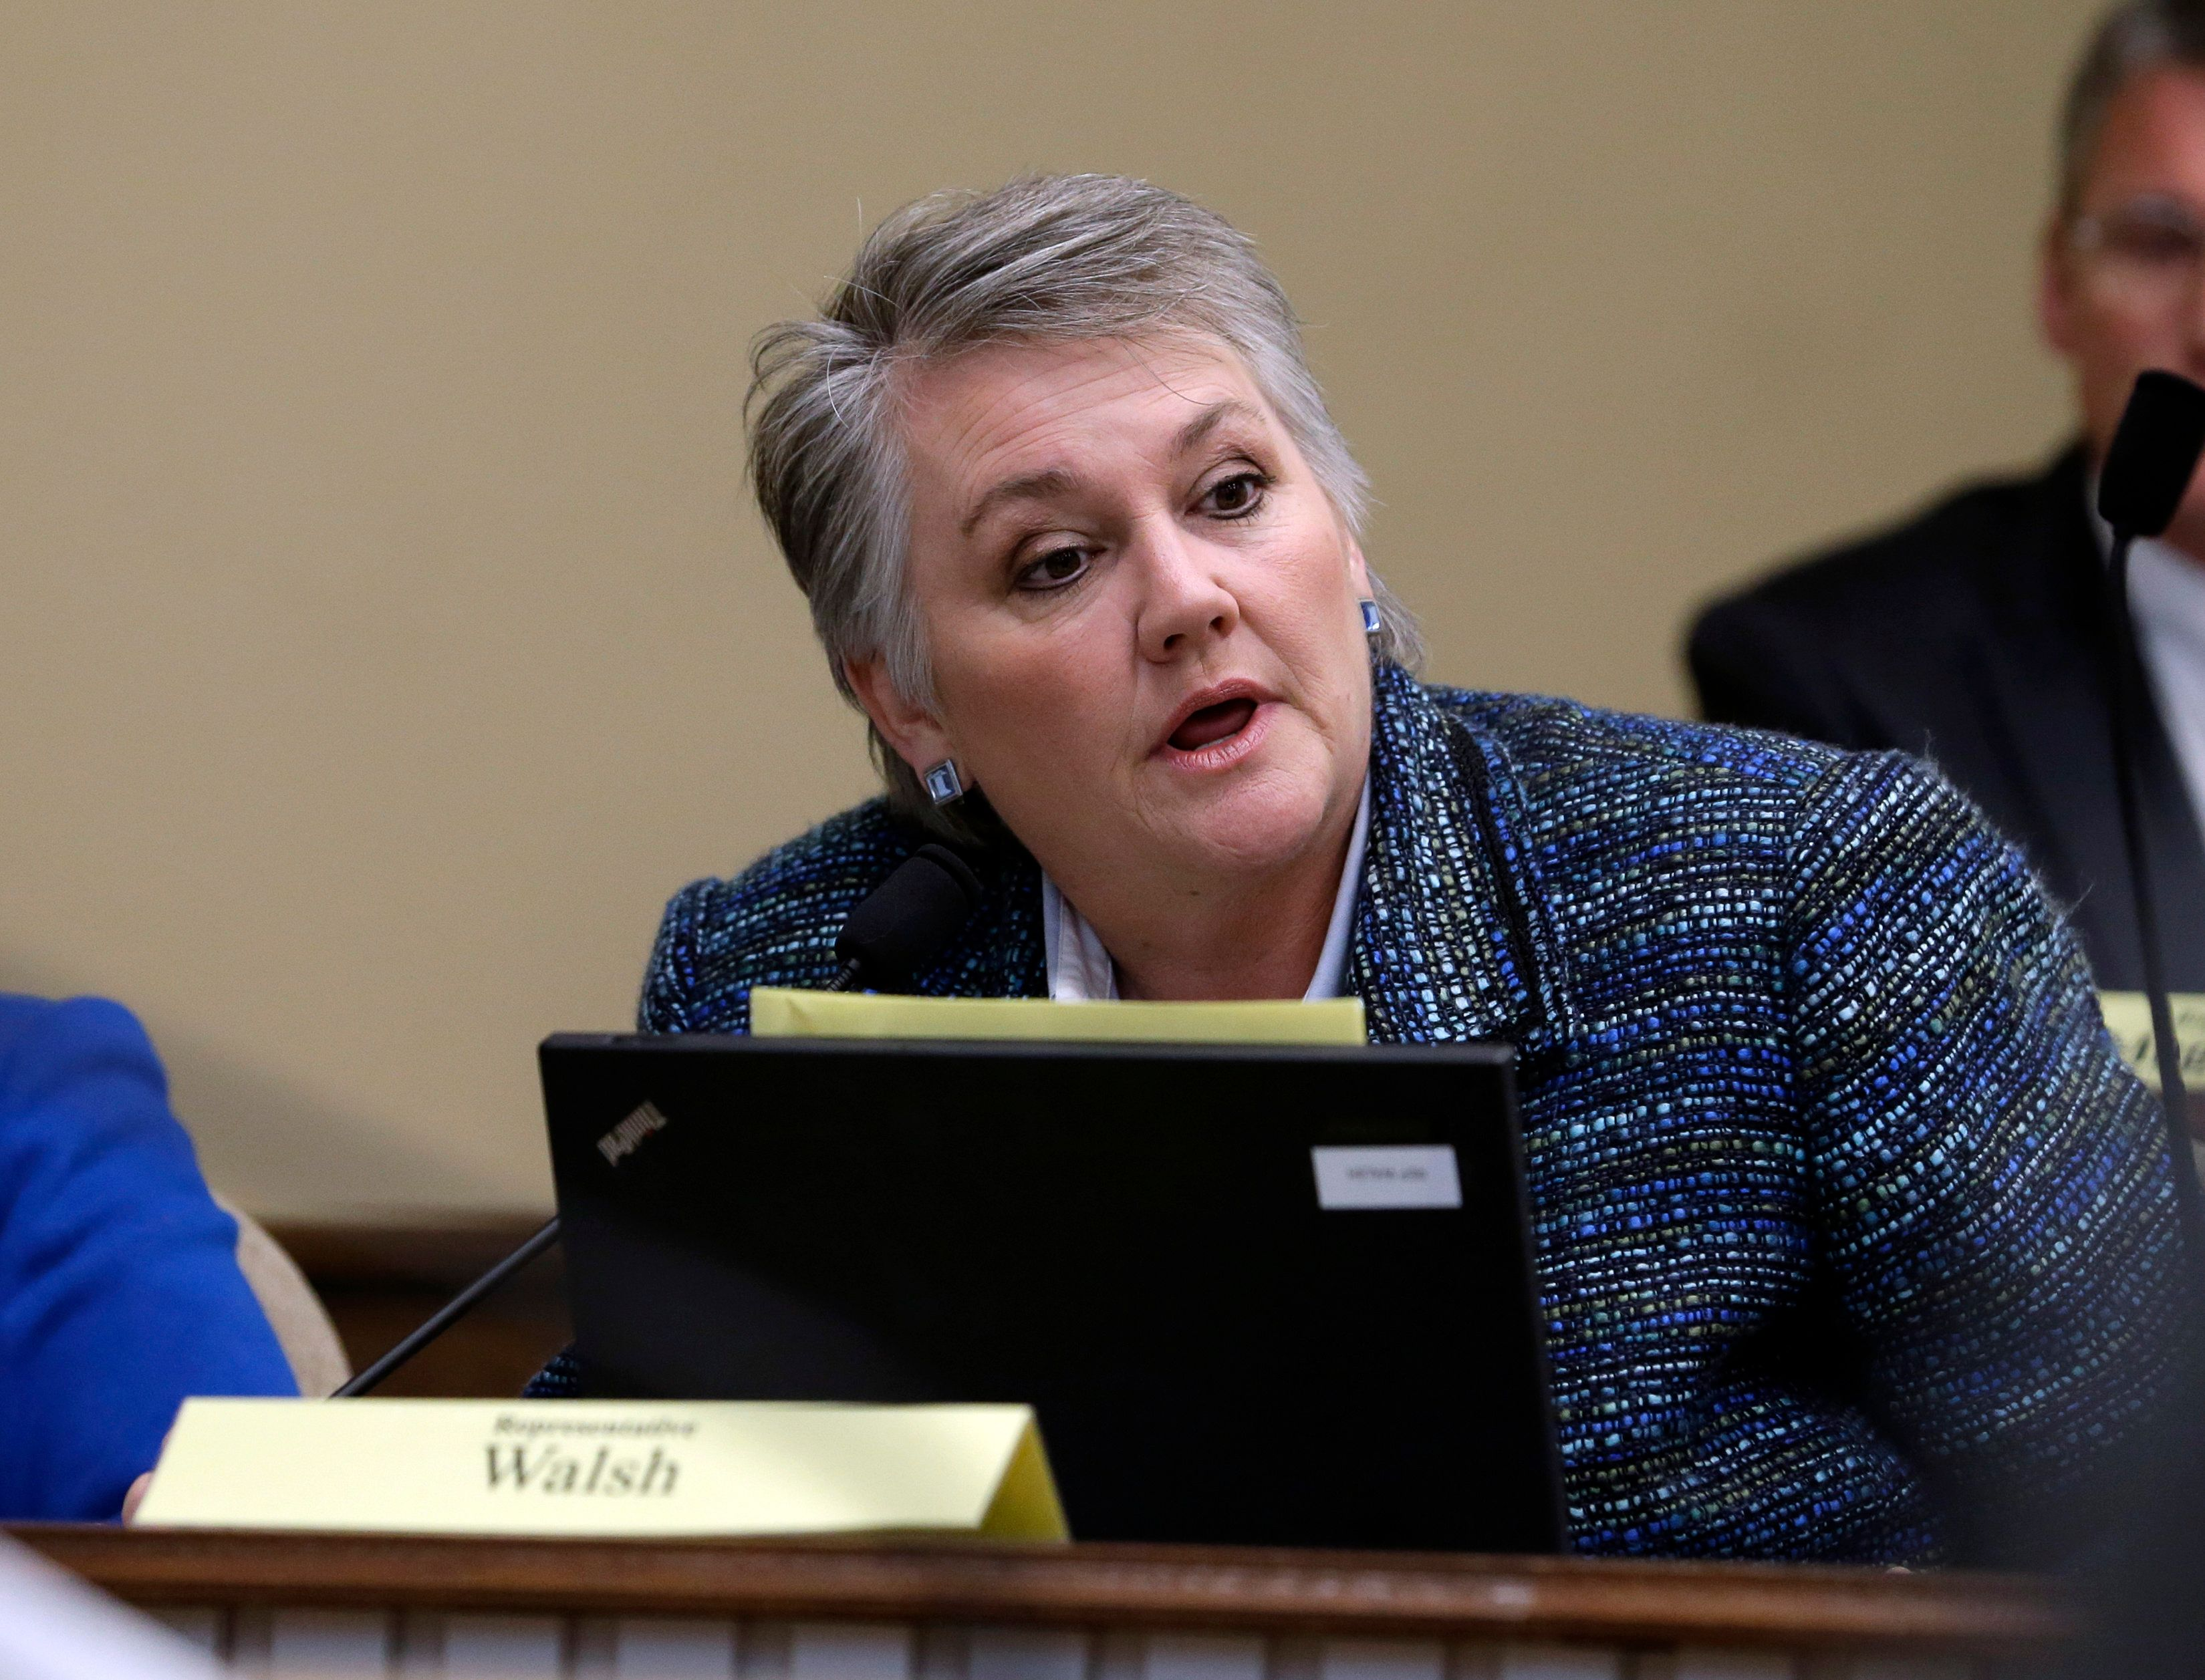 """Washington state Sen. Maureen Walsh said she regrets saying some nurses """"probably play cards"""" during their shifts."""